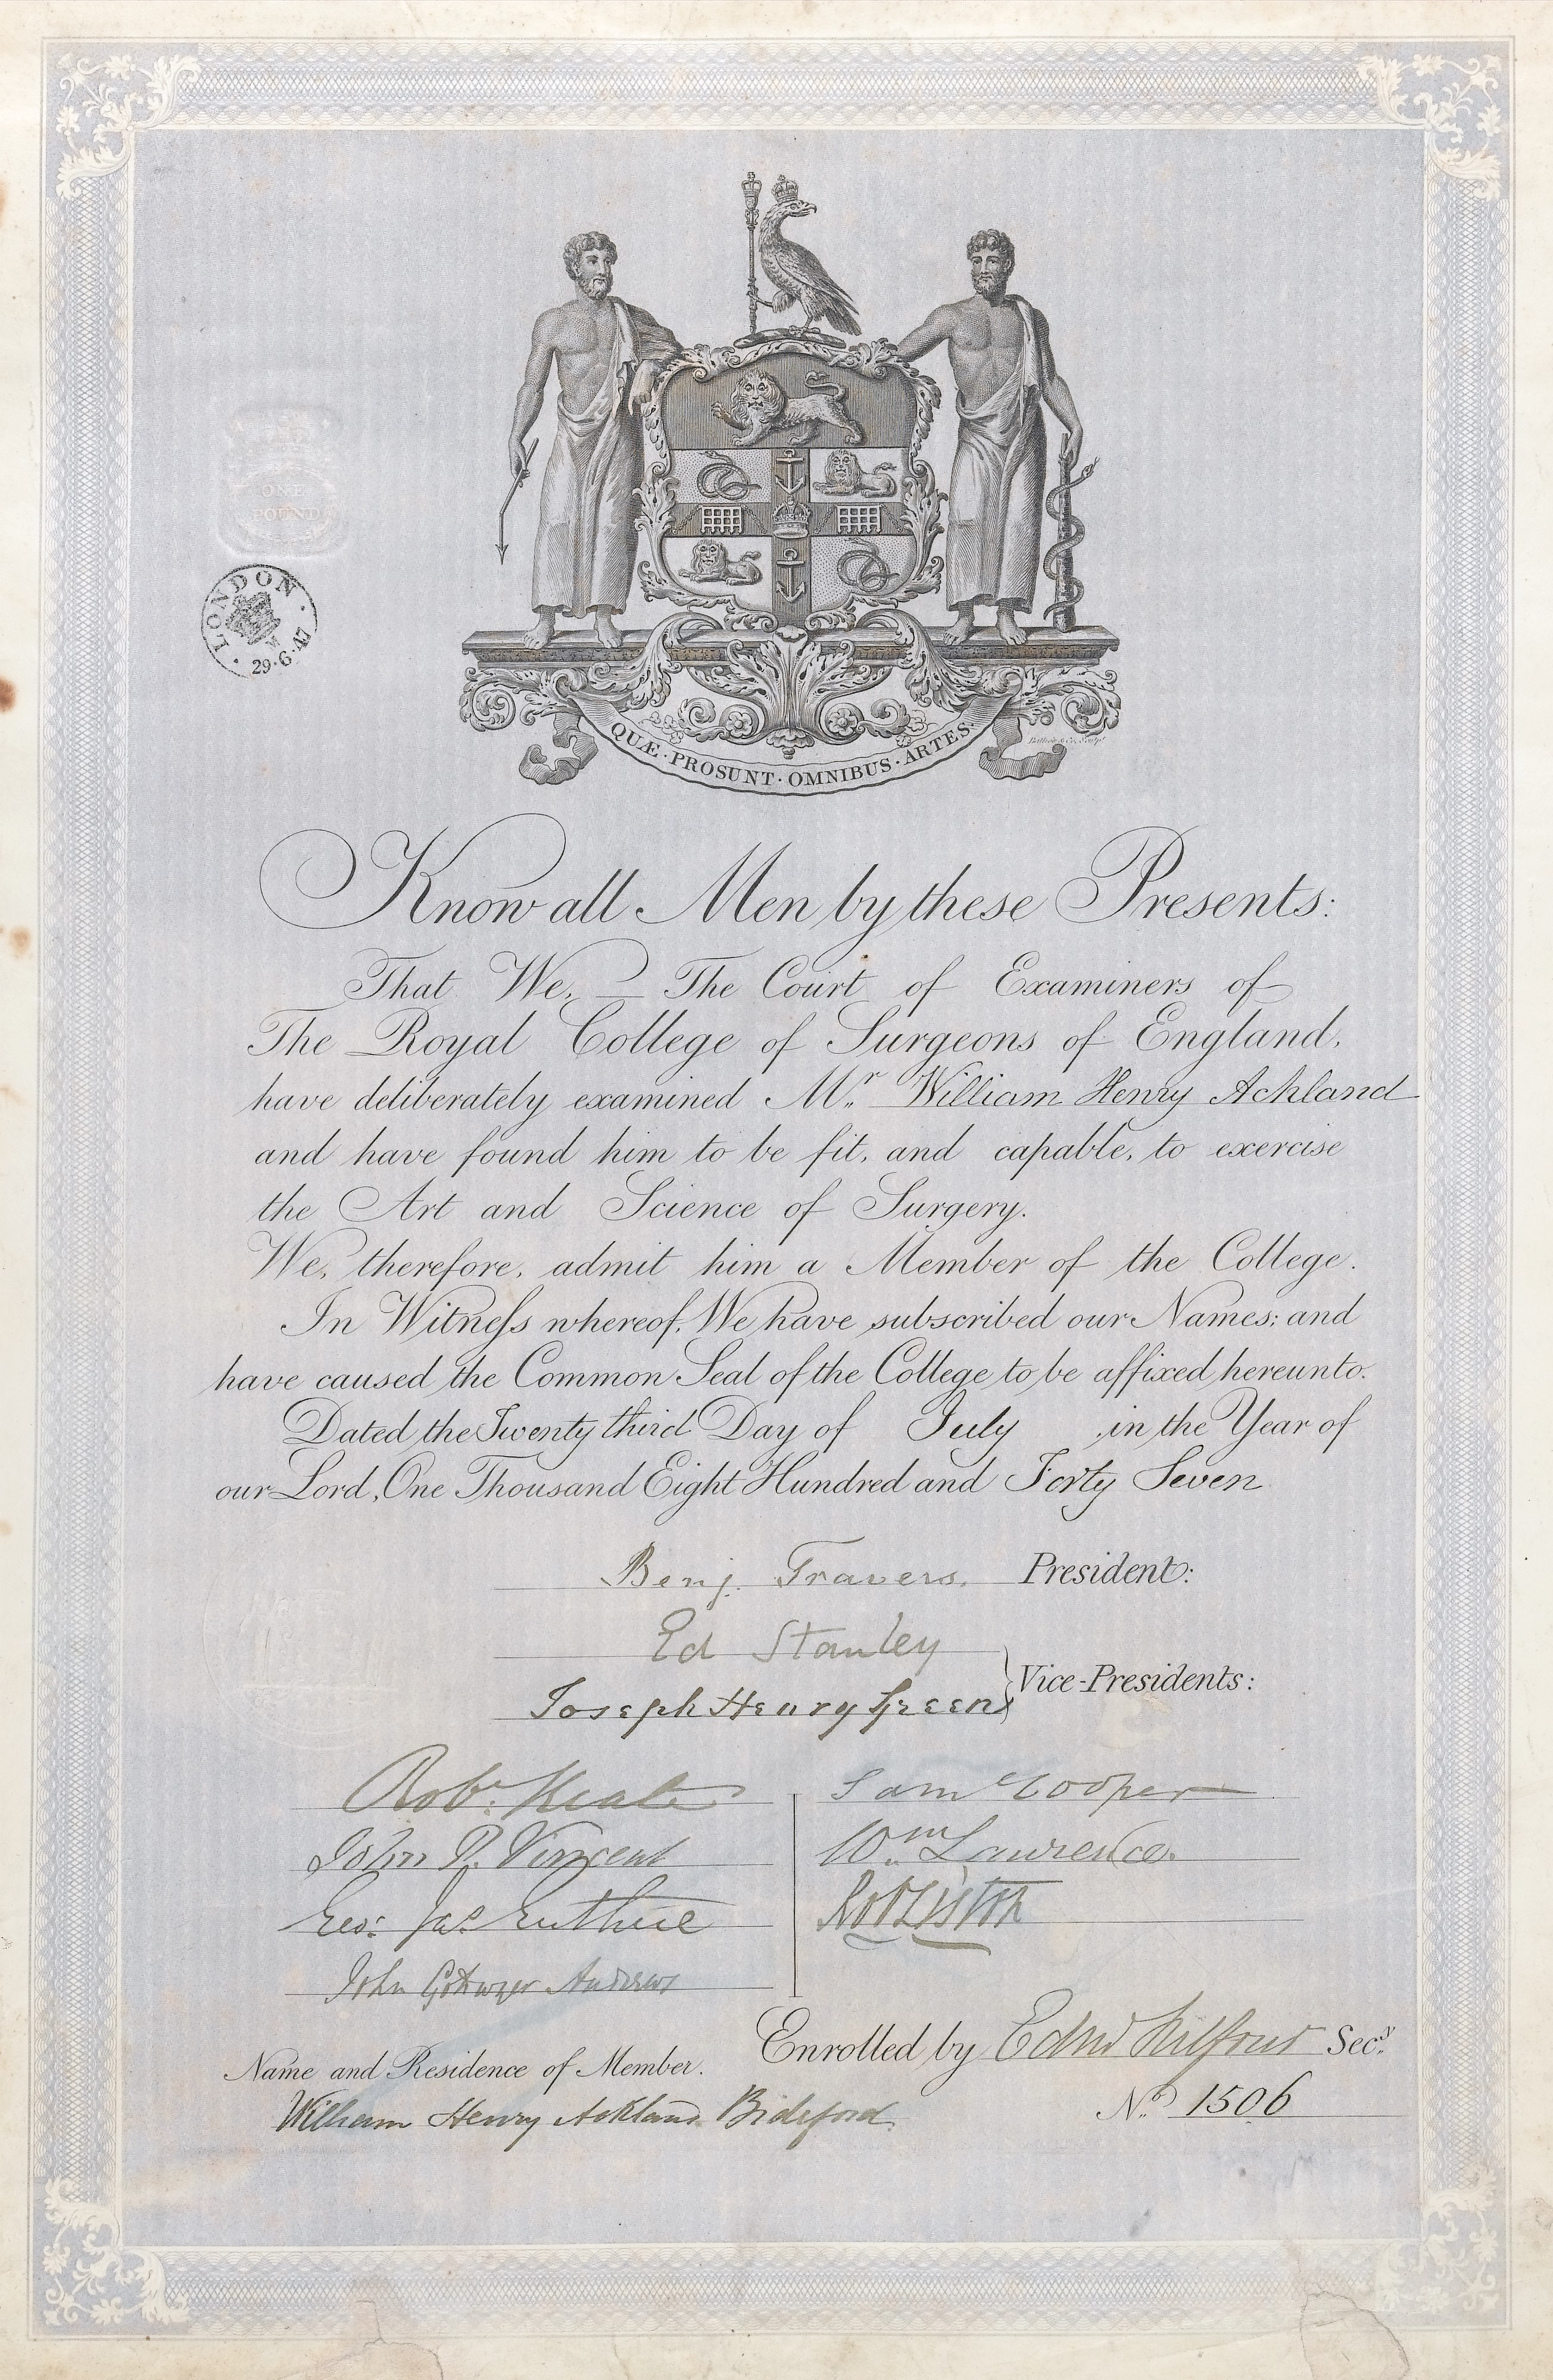 file mrcs diploma for w h ackland wellcome l jpg  file mrcs diploma for w h ackland 1847 wellcome l0044154 jpg